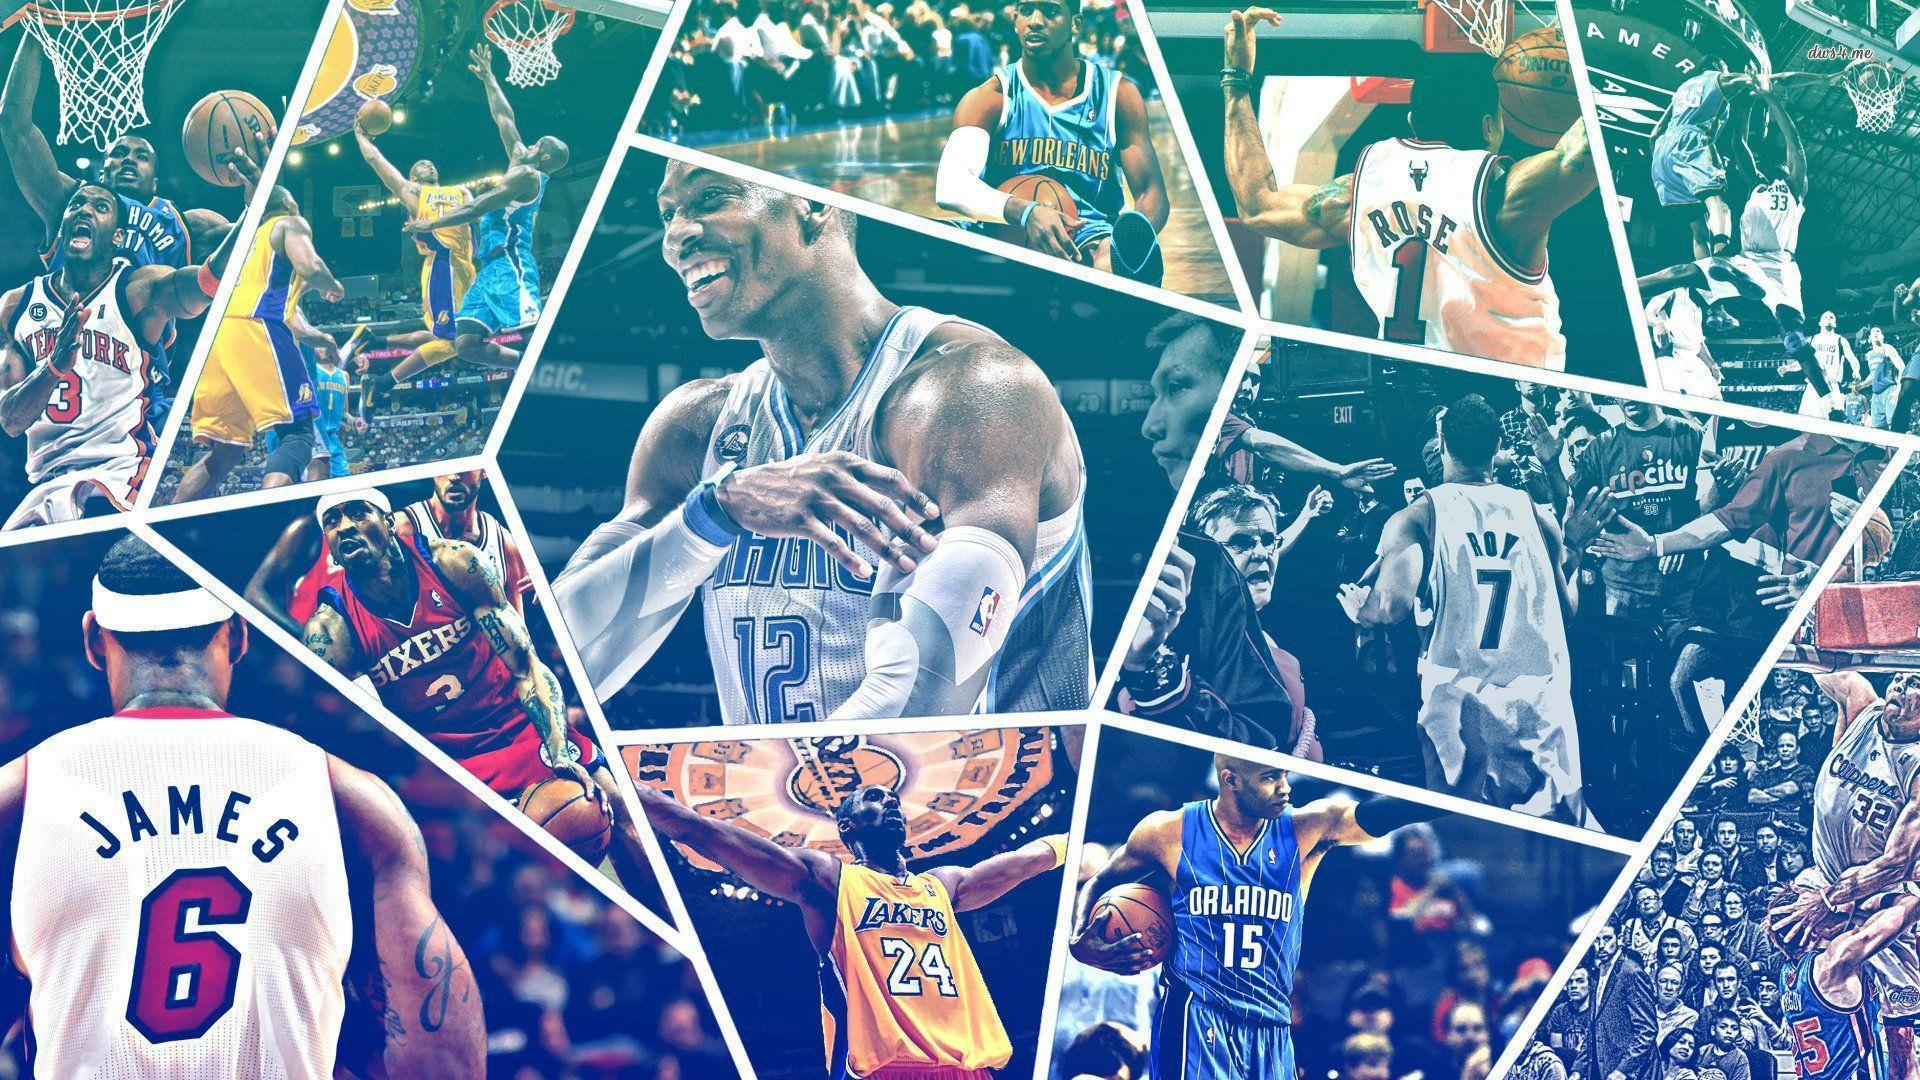 NBA Players Wallpaper